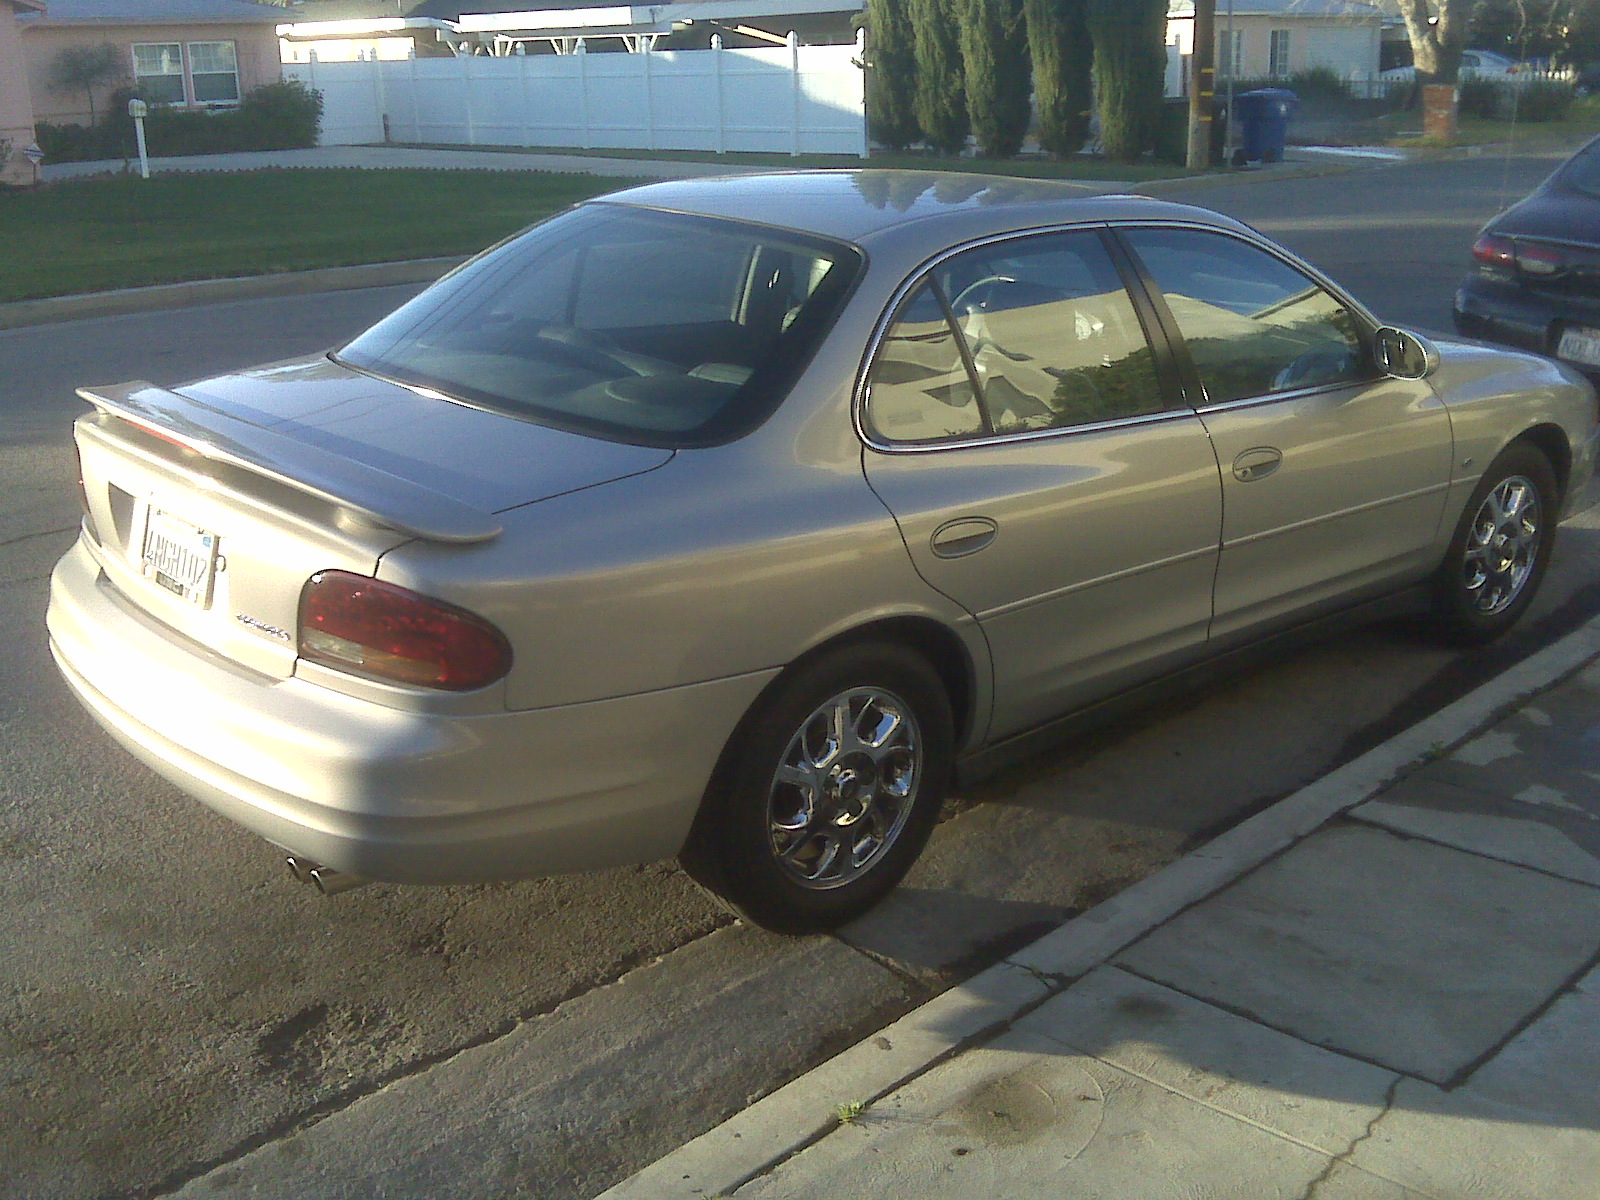 2000 Oldsmobile Intrigue - Pictures - 2000 Oldsmobile Intrigue 4 Dr ...